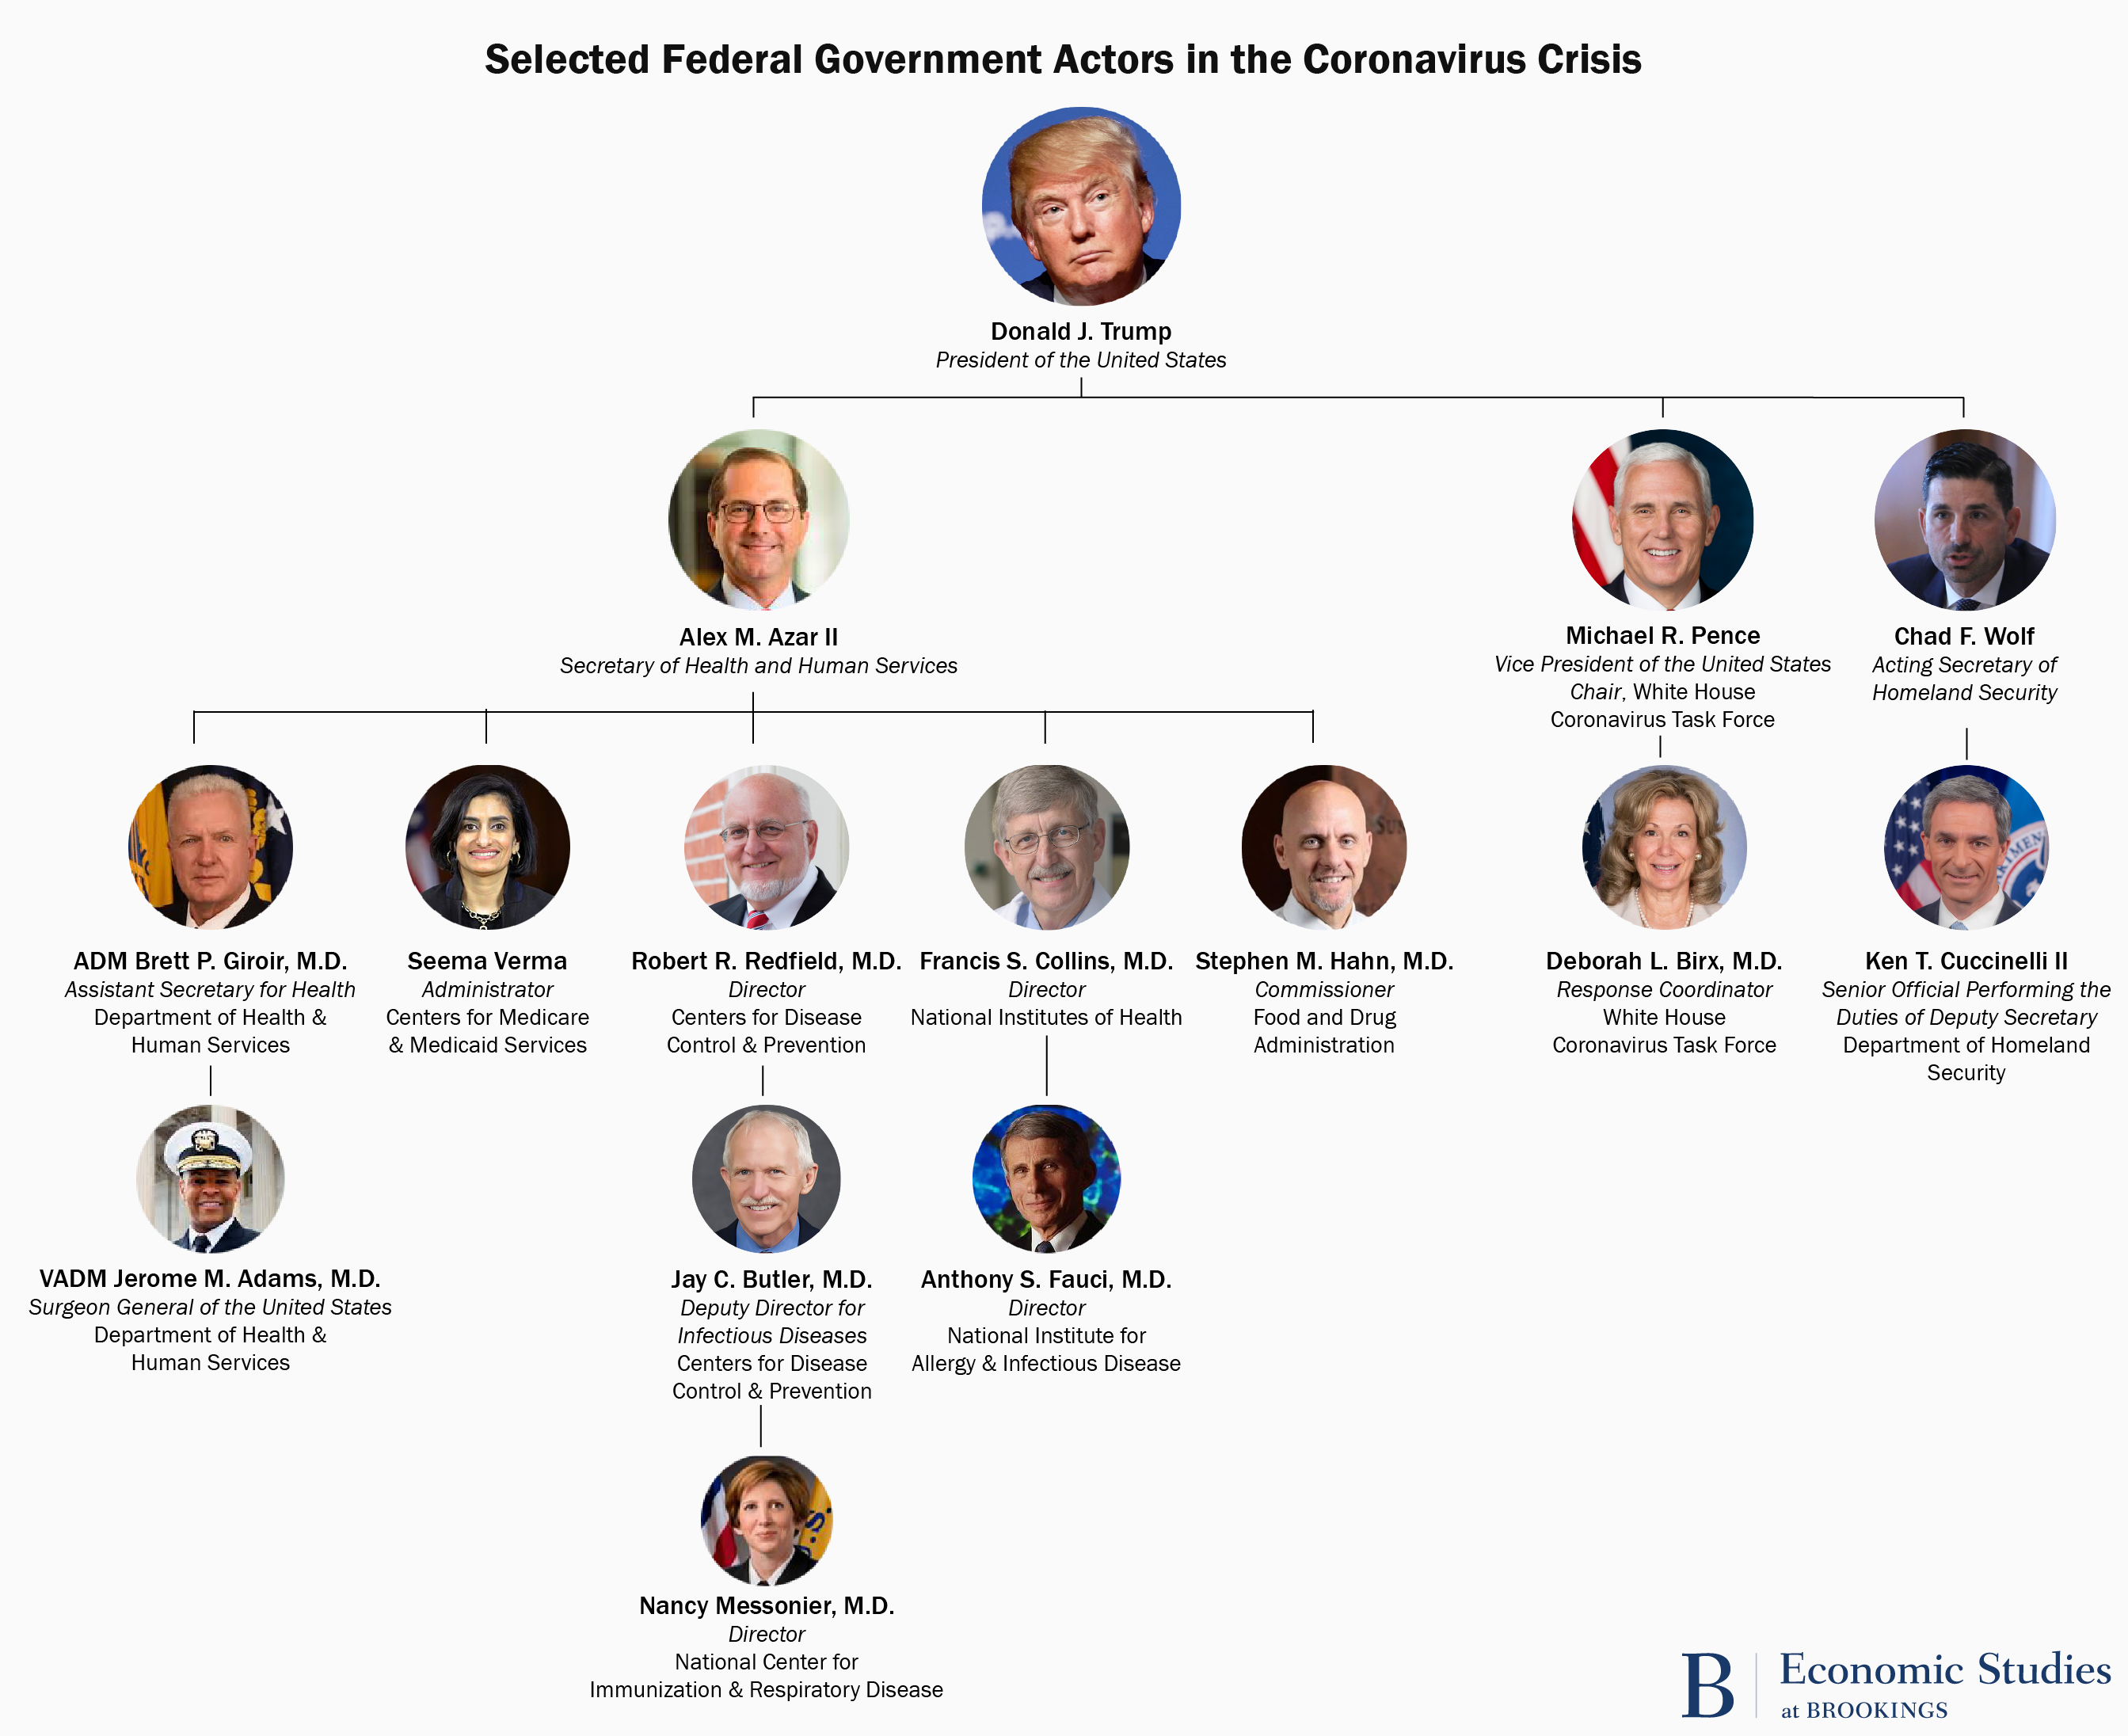 Selected federal government actors in the COVID19 crisis